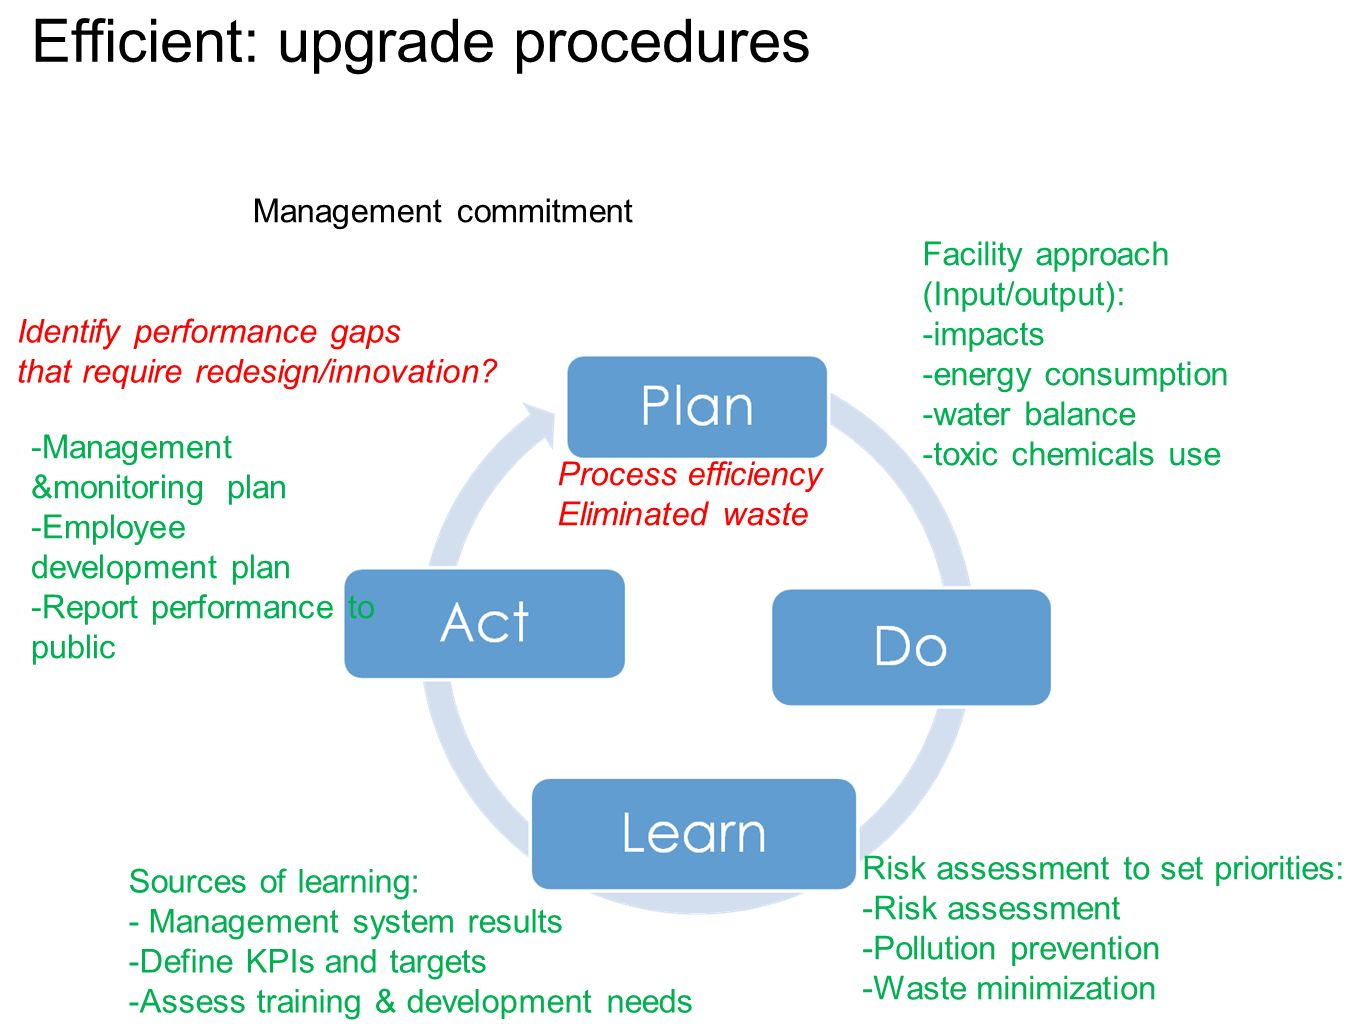 Management commitment Efficient: upgrade procedures Facility approach (Input/output): -impacts -energy consumption -water balance -toxic chemicals use Risk assessment to set priorities: -Risk assessment -Pollution prevention -Waste minimization Sources of learning: - Management system results -Define KPIs and targets -Assess training & development needs -Management &monitoring plan -Employee development plan -Report performance to public Identify performance gaps that require redesign/innovation.